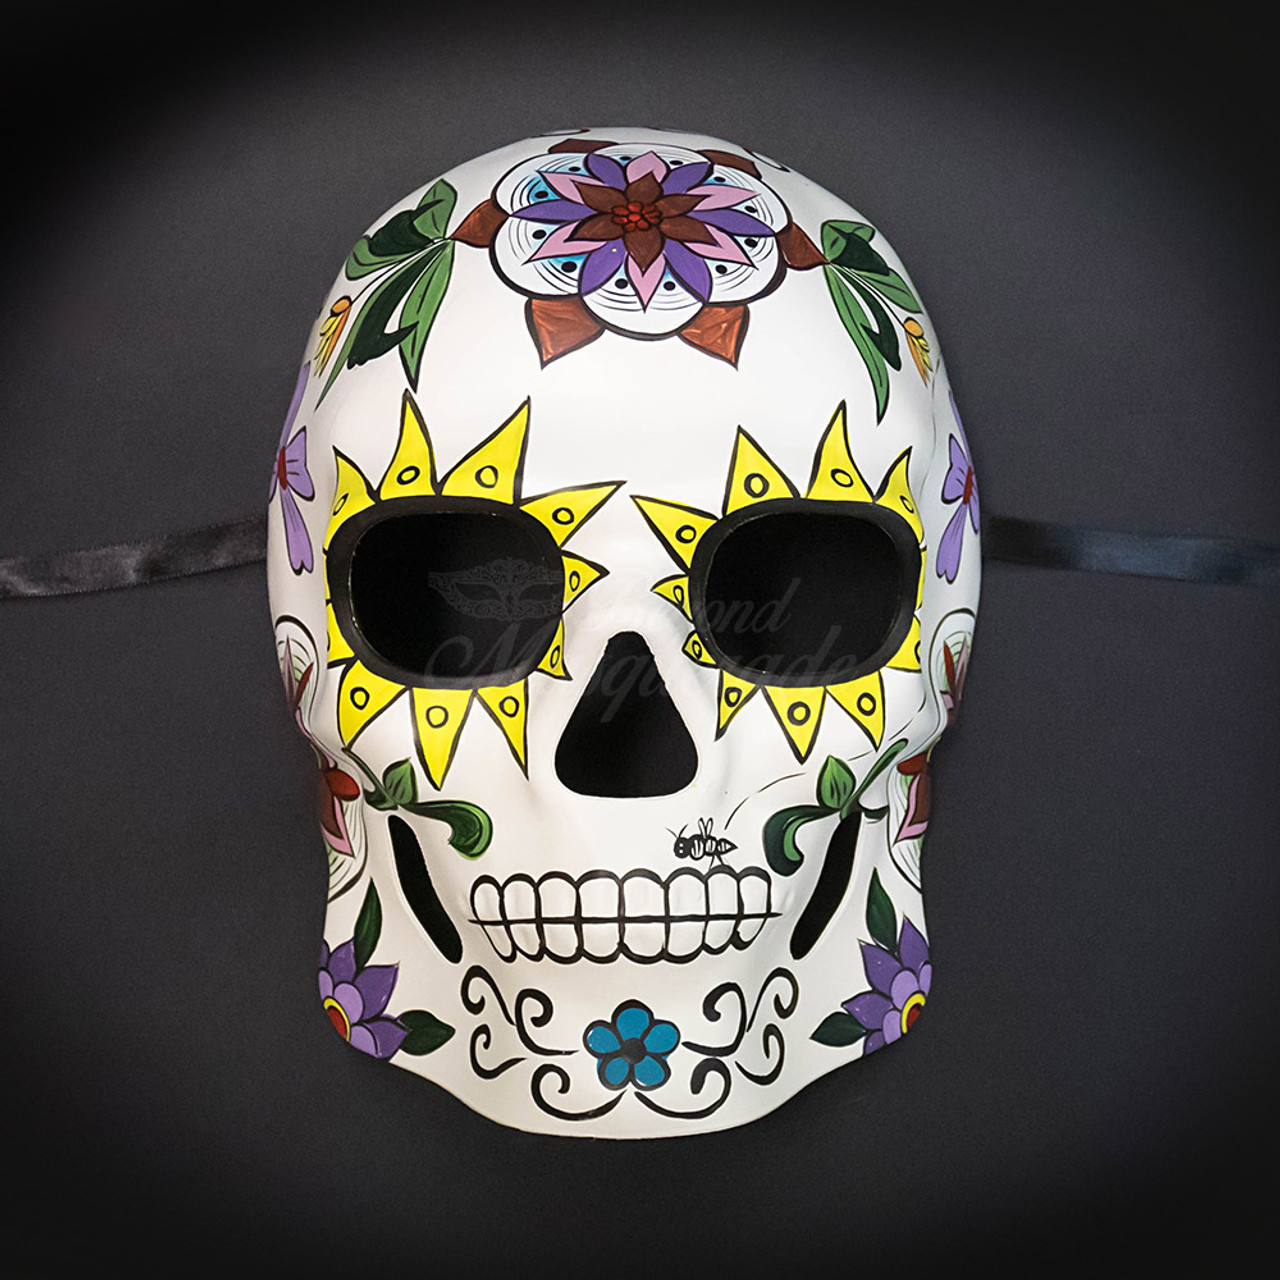 Day of the Dead Sugar Skull Plaster Hand Painted Mask with Flowers Halloween